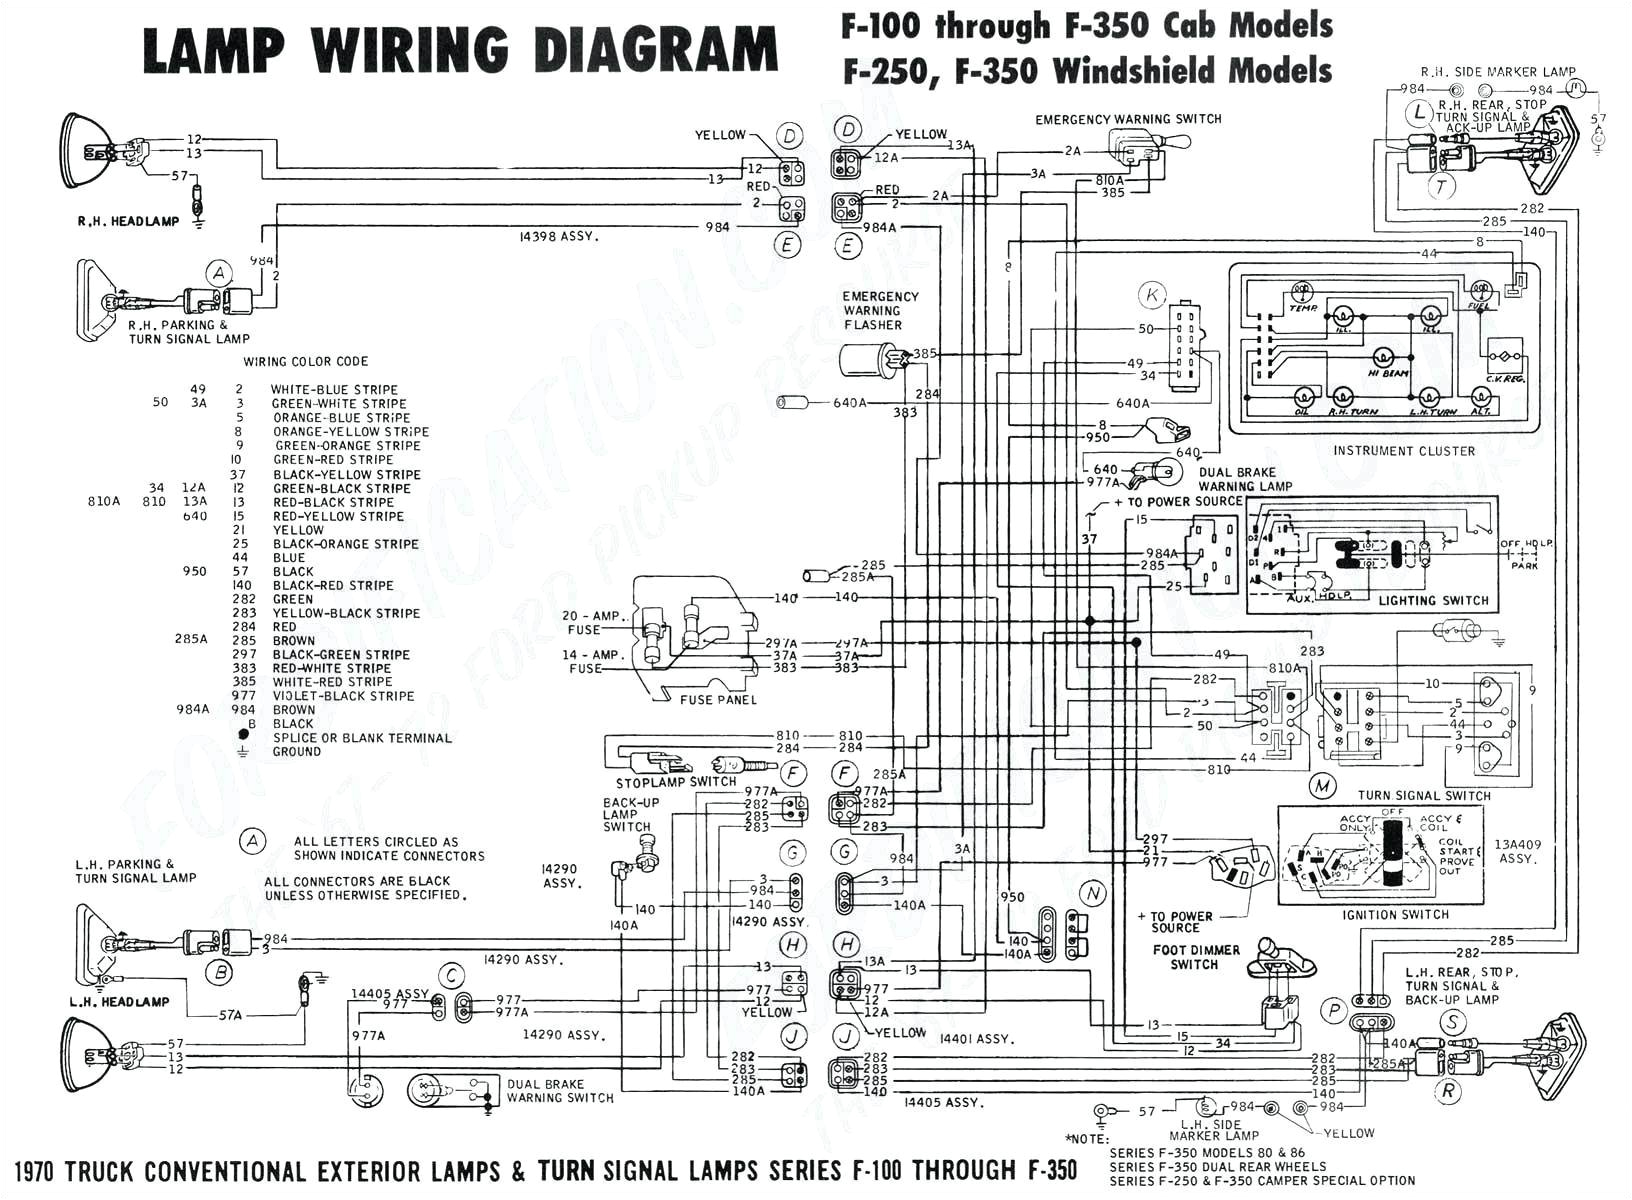 w124 wiring diagram unique 2005 ford f350 ke light wiring diagram wiring diagram amp fuse